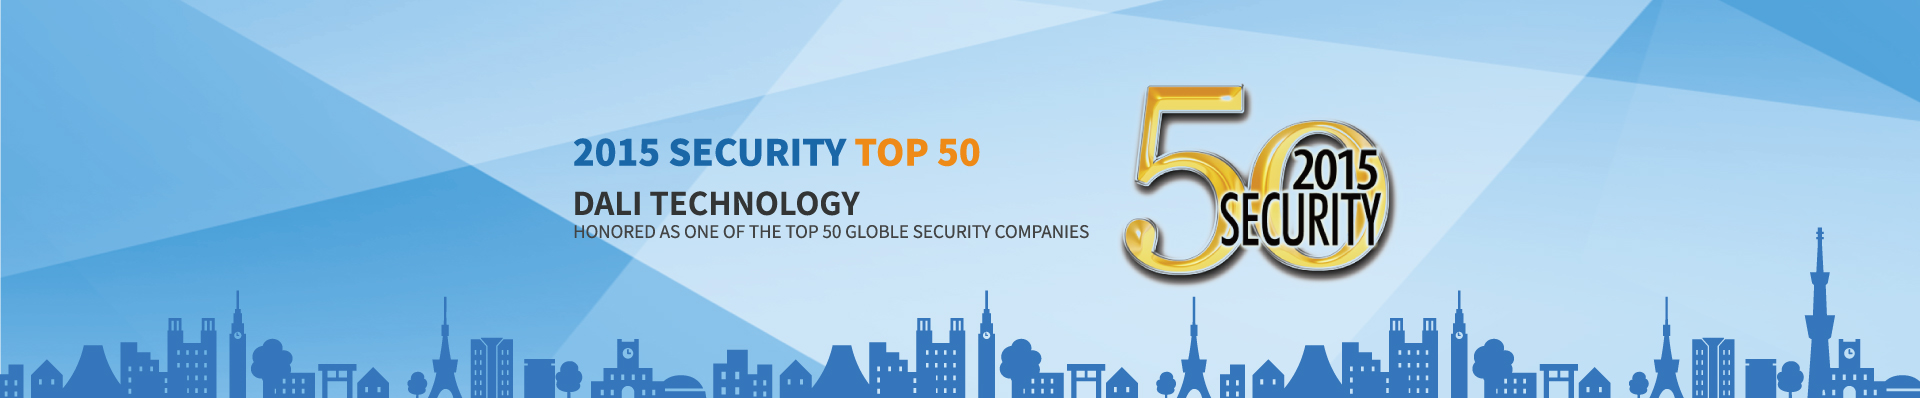 2015SECURITY50